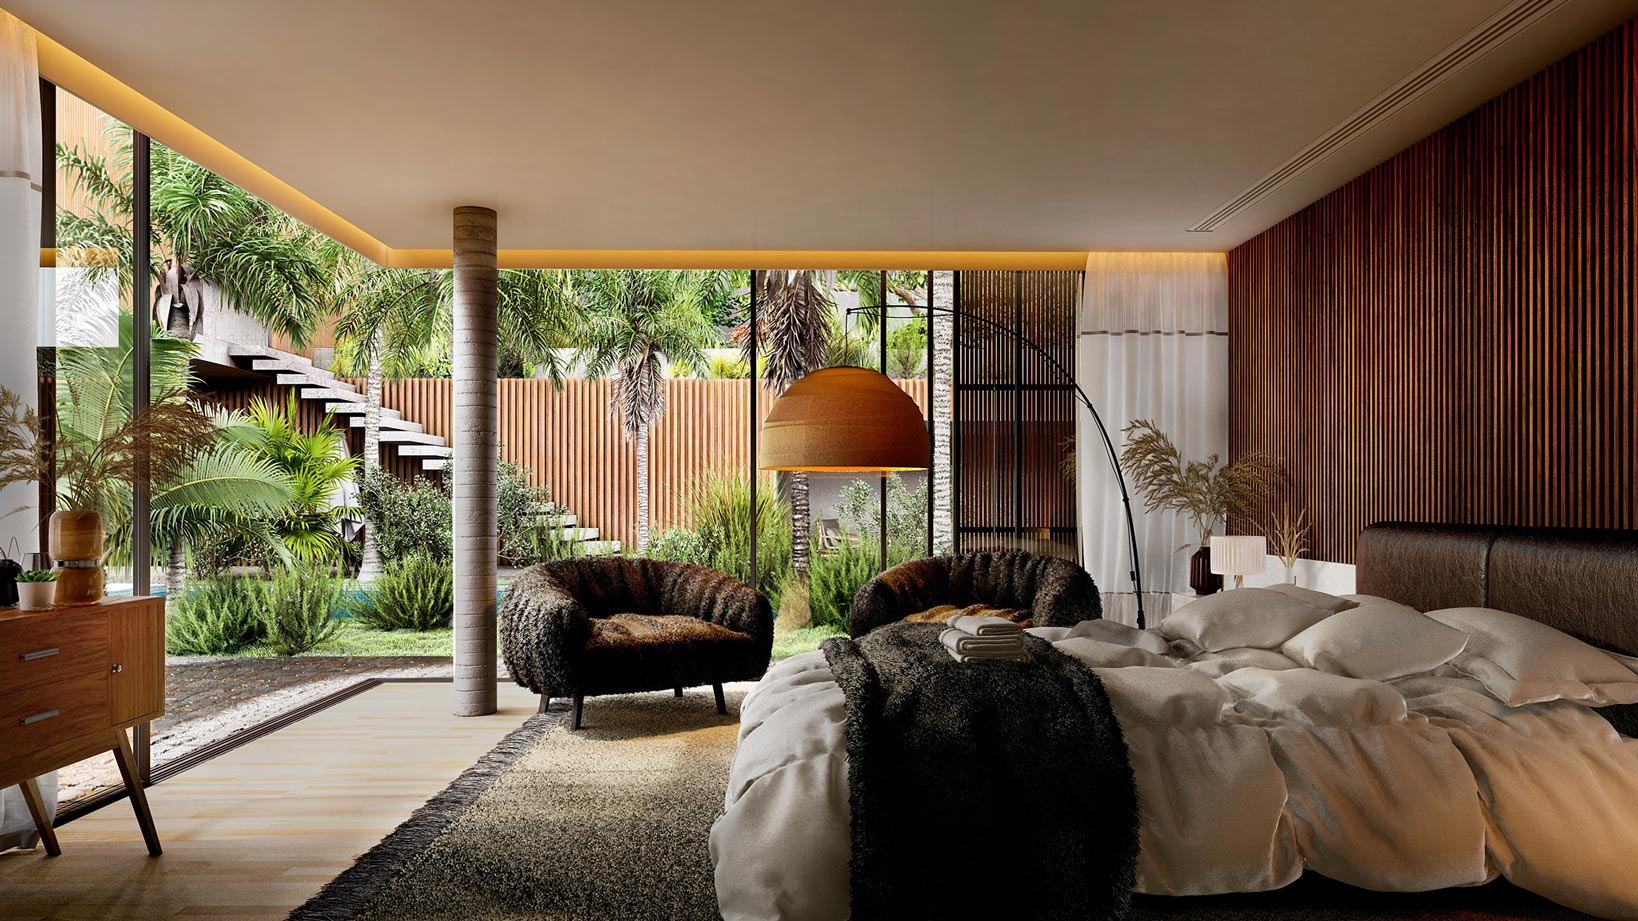 Lazy sunny morning, rendered in Lumion by Gui Felix (project by Marcio Kogan of MK27).